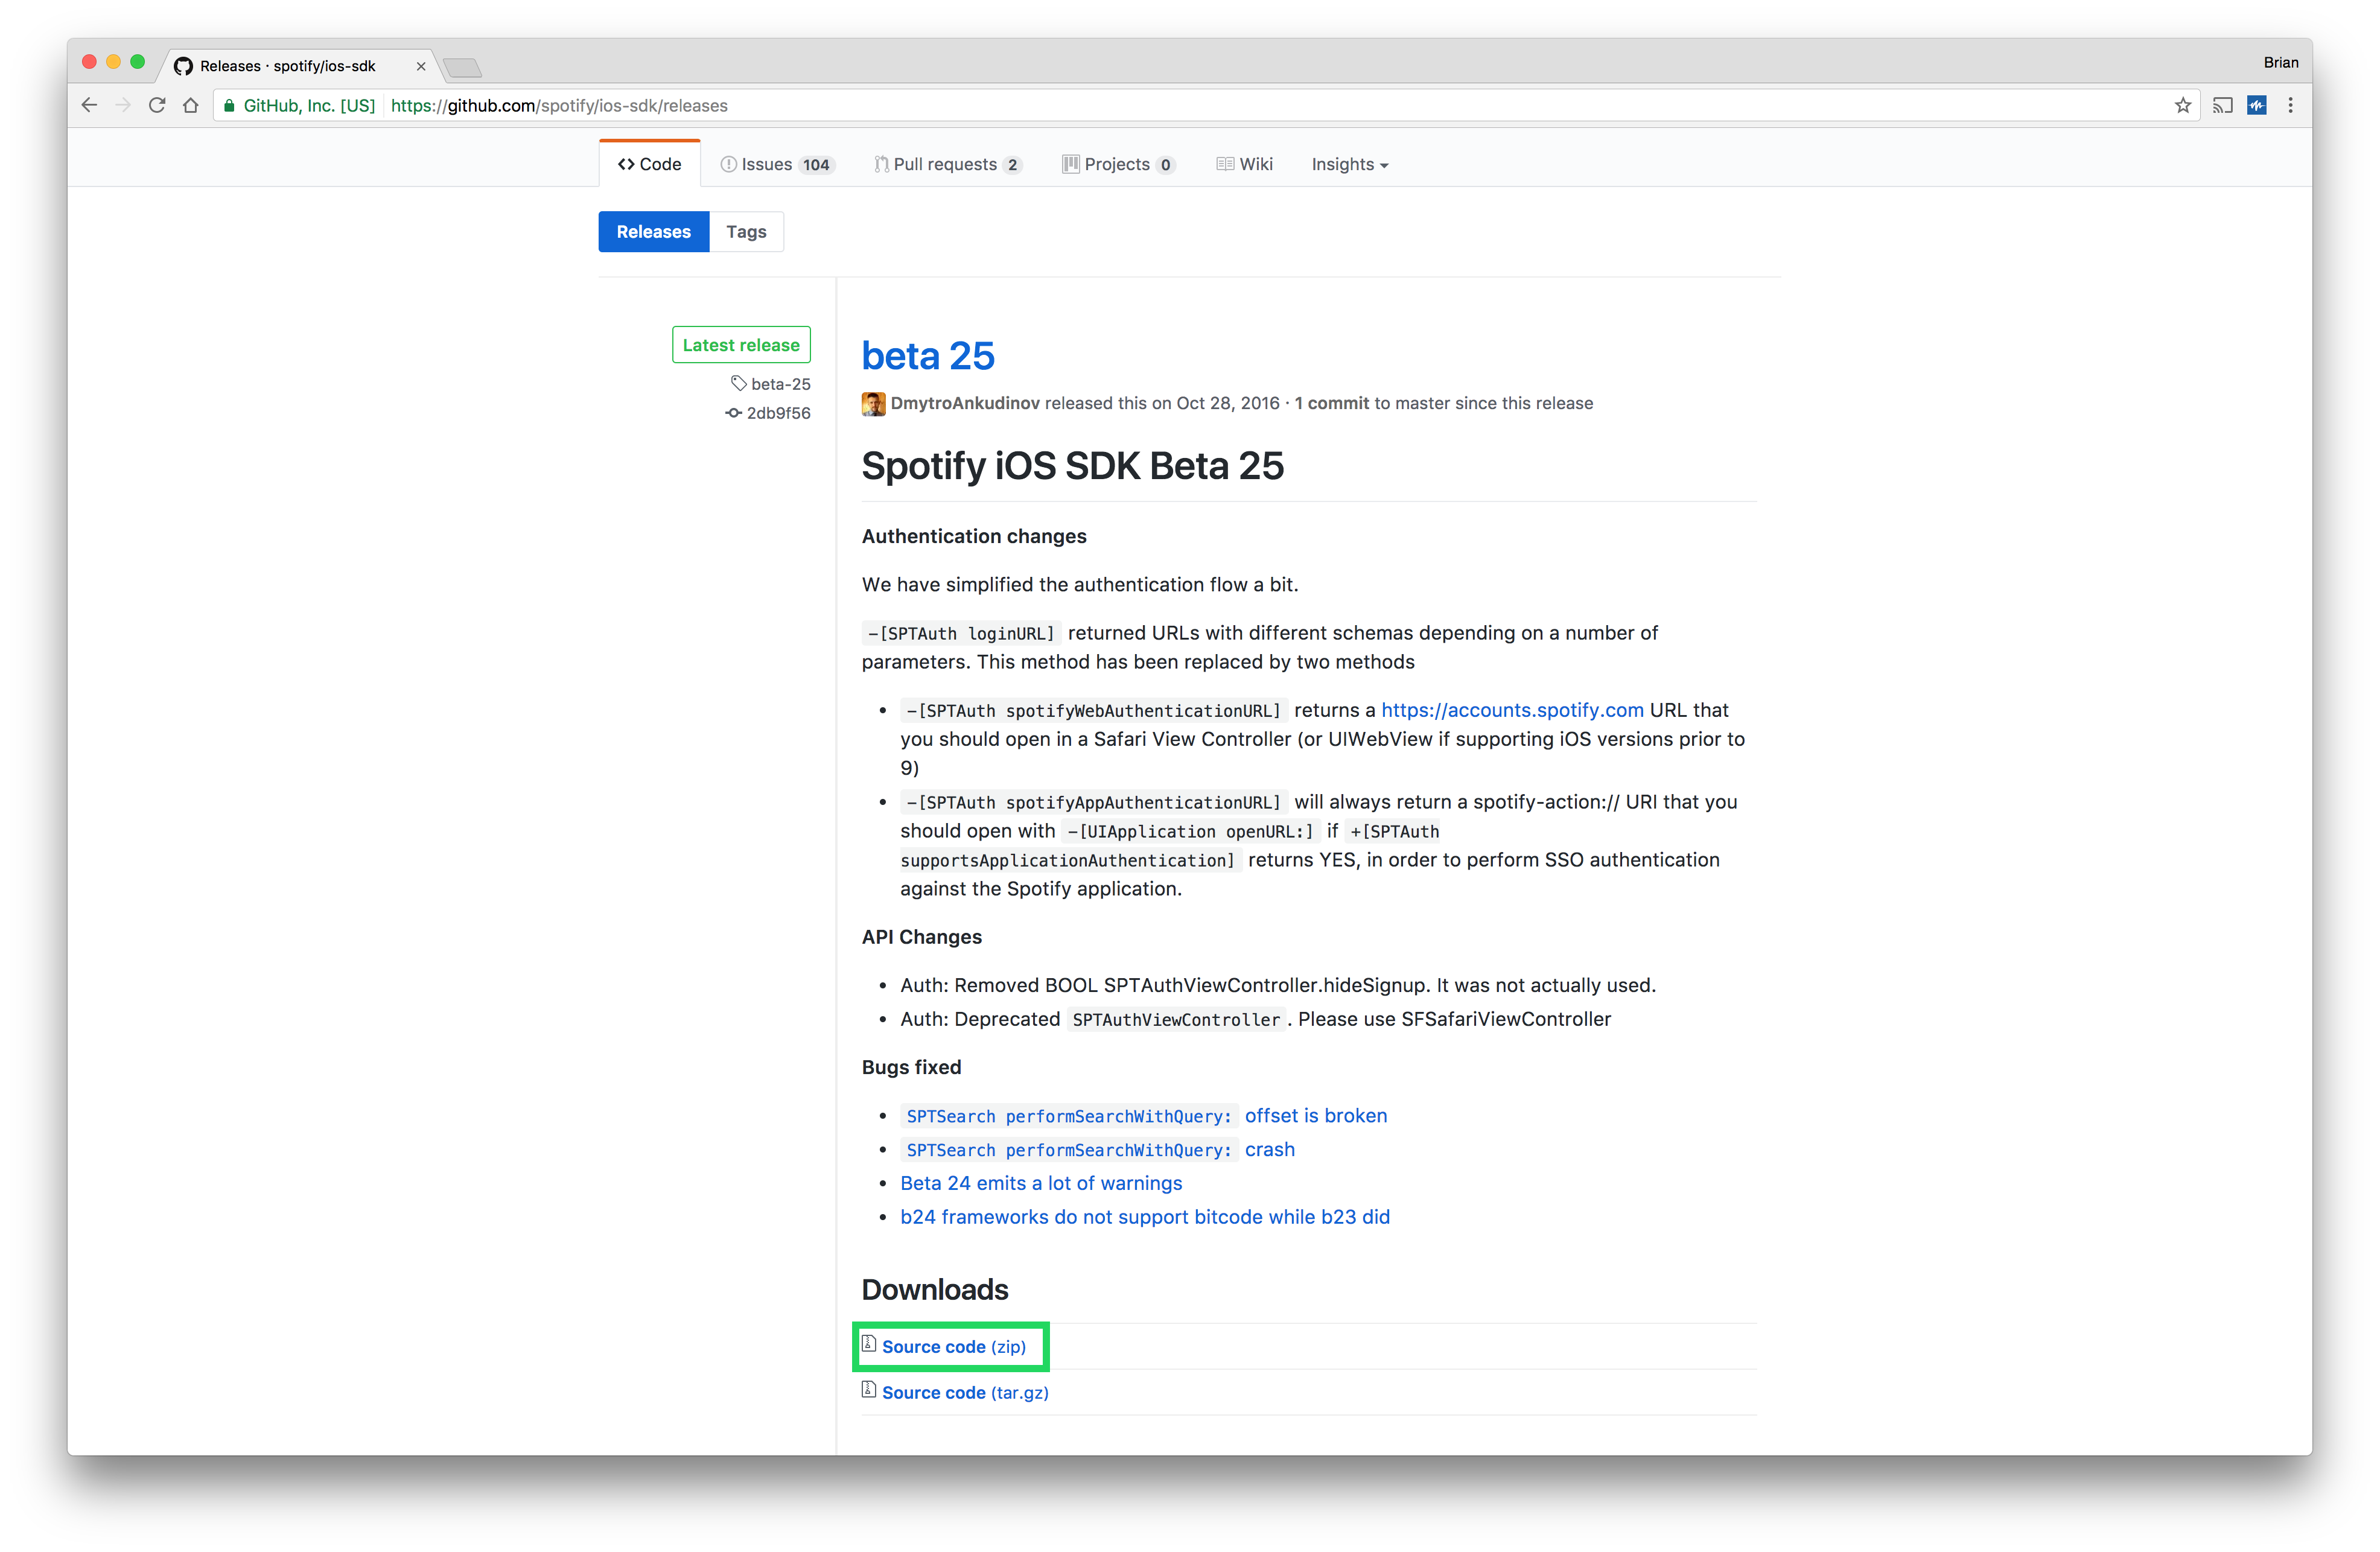 Getting Started with the Spotify iOS SDK - Brian Hans - Medium